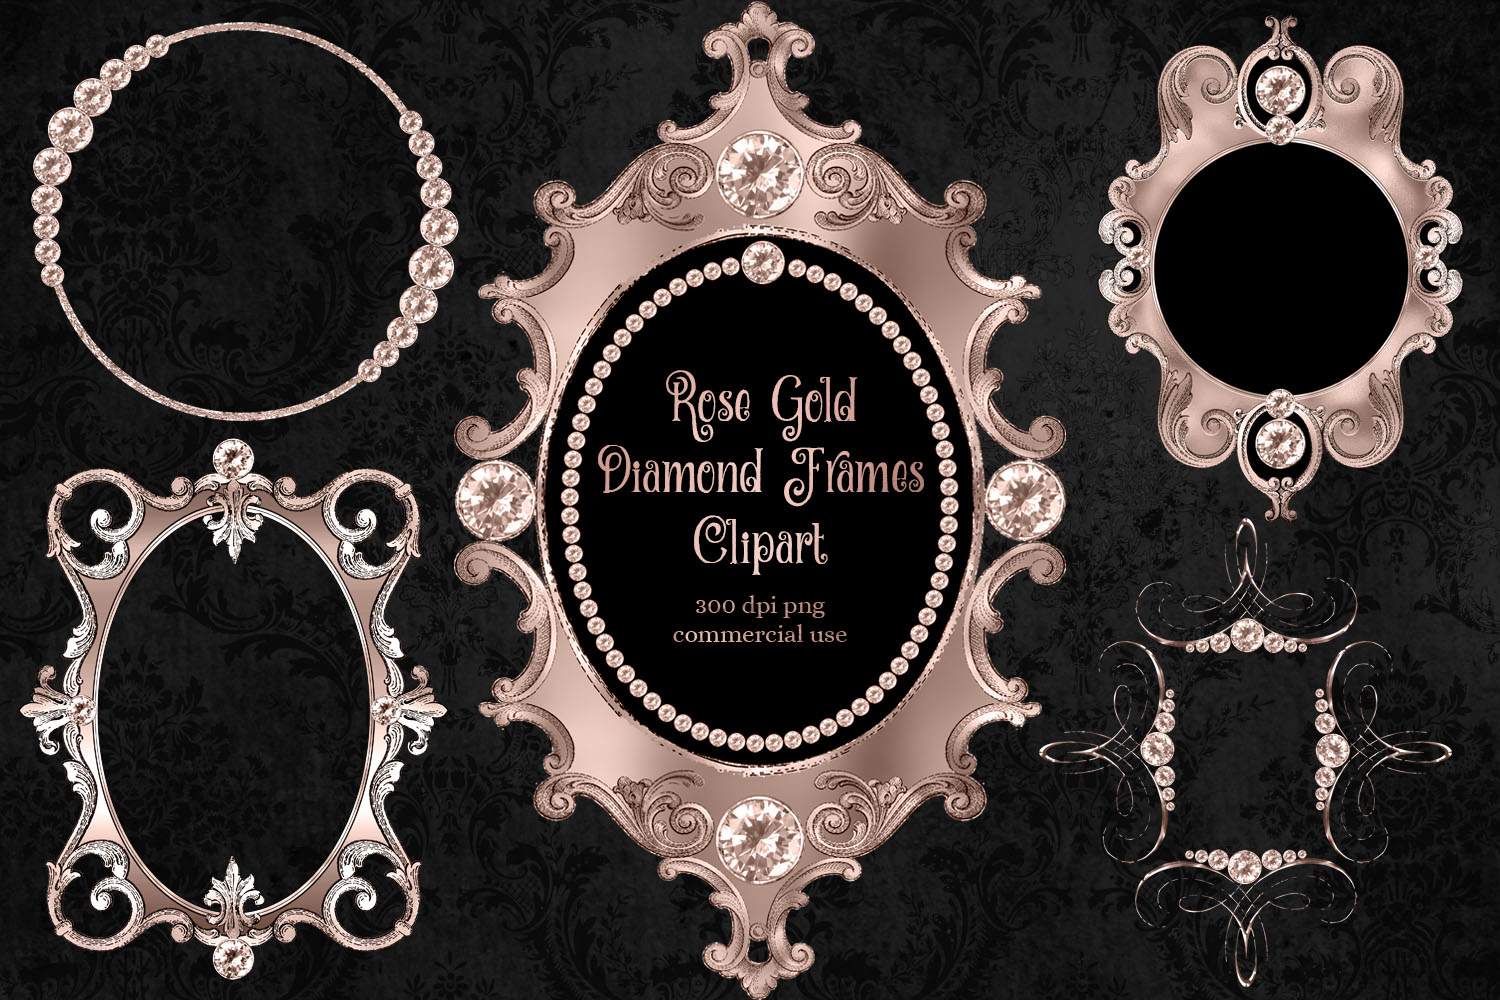 Rose Gold Diamond Frames Clipart example image 1